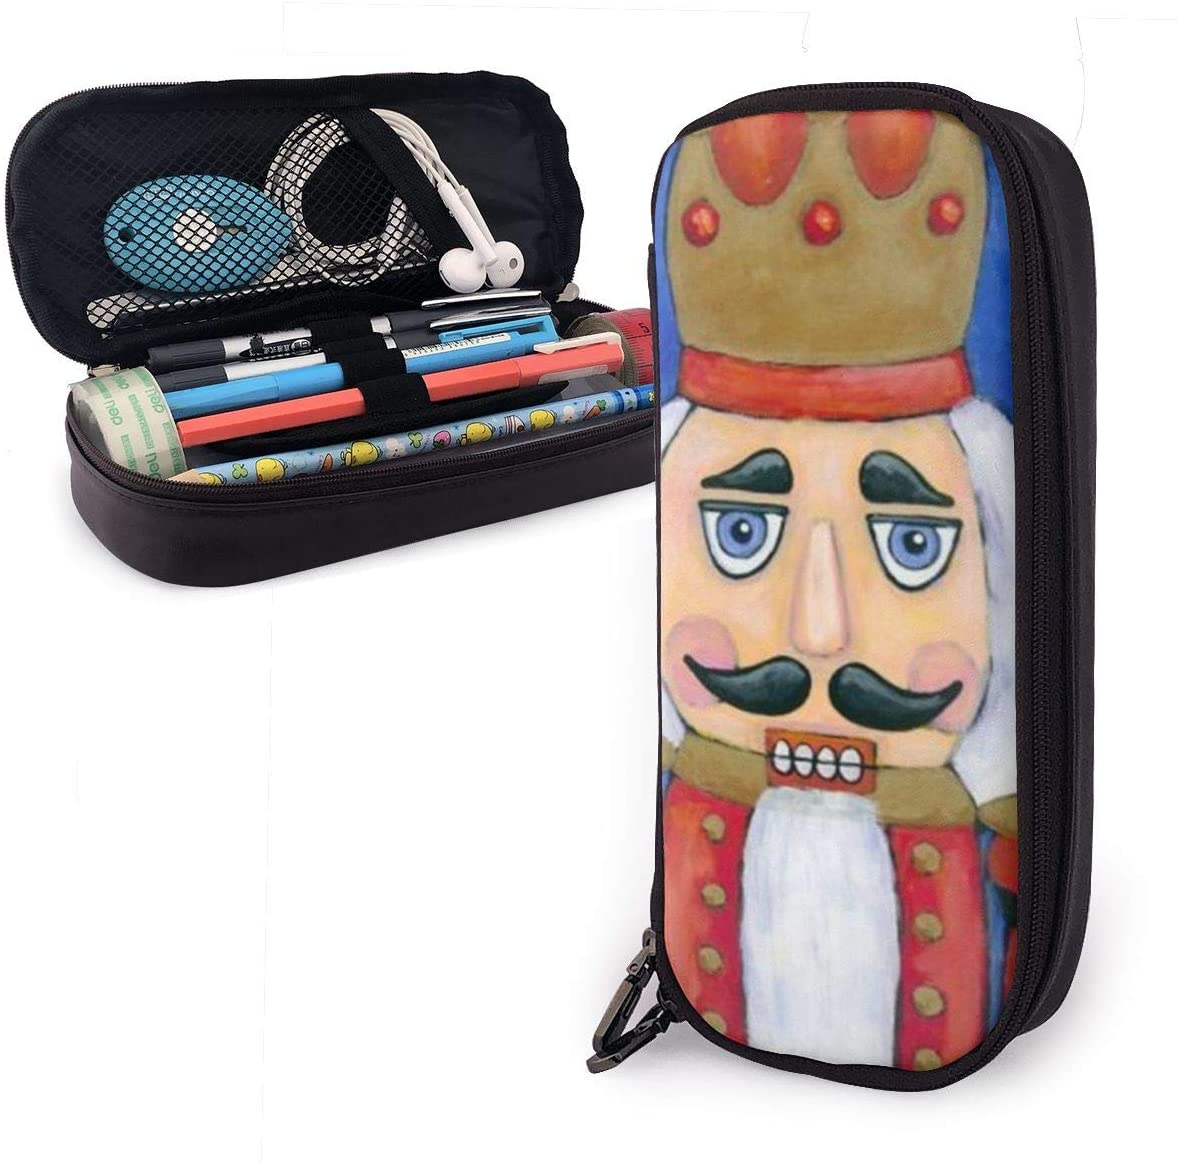 NiYoung Stylish Pen Pencil Holder Crazy Design Nutcracker Blue Professional Storage Zipper School Office Supplies Coin Organizer Makeup Bag - One Pocket Office Supplies Back to School